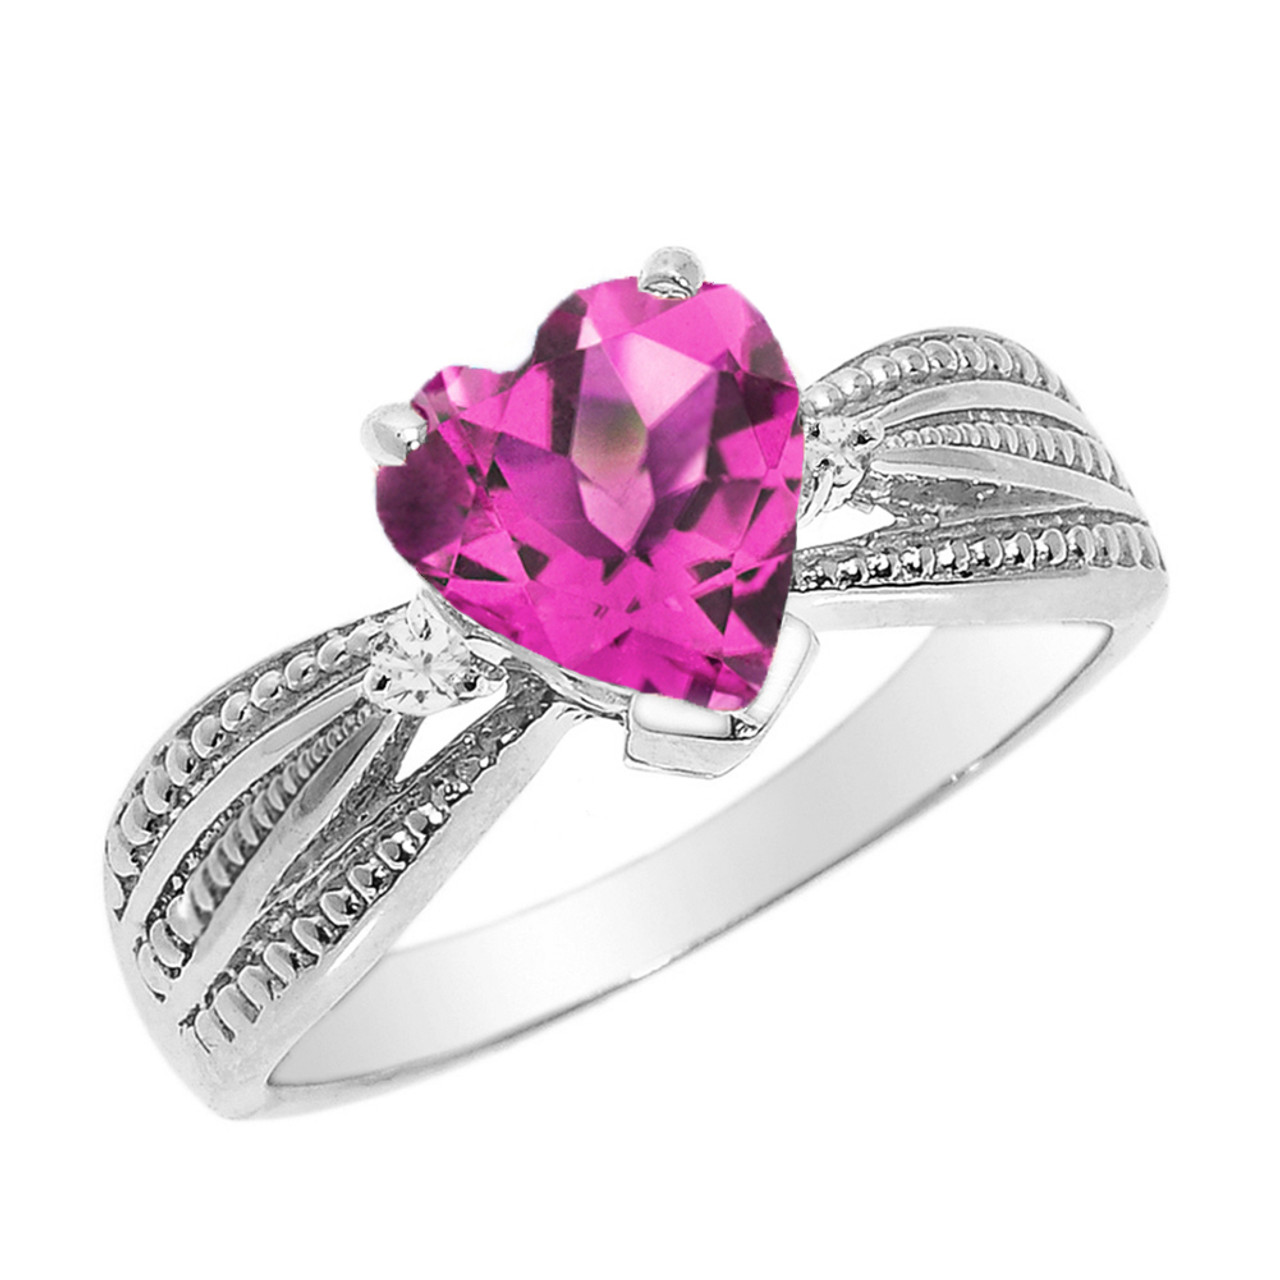 Shop Our Beautiful Diamond Proposal Rings At Fascinating: Beautiful White Gold Alexandrite (LCAL) And Diamond